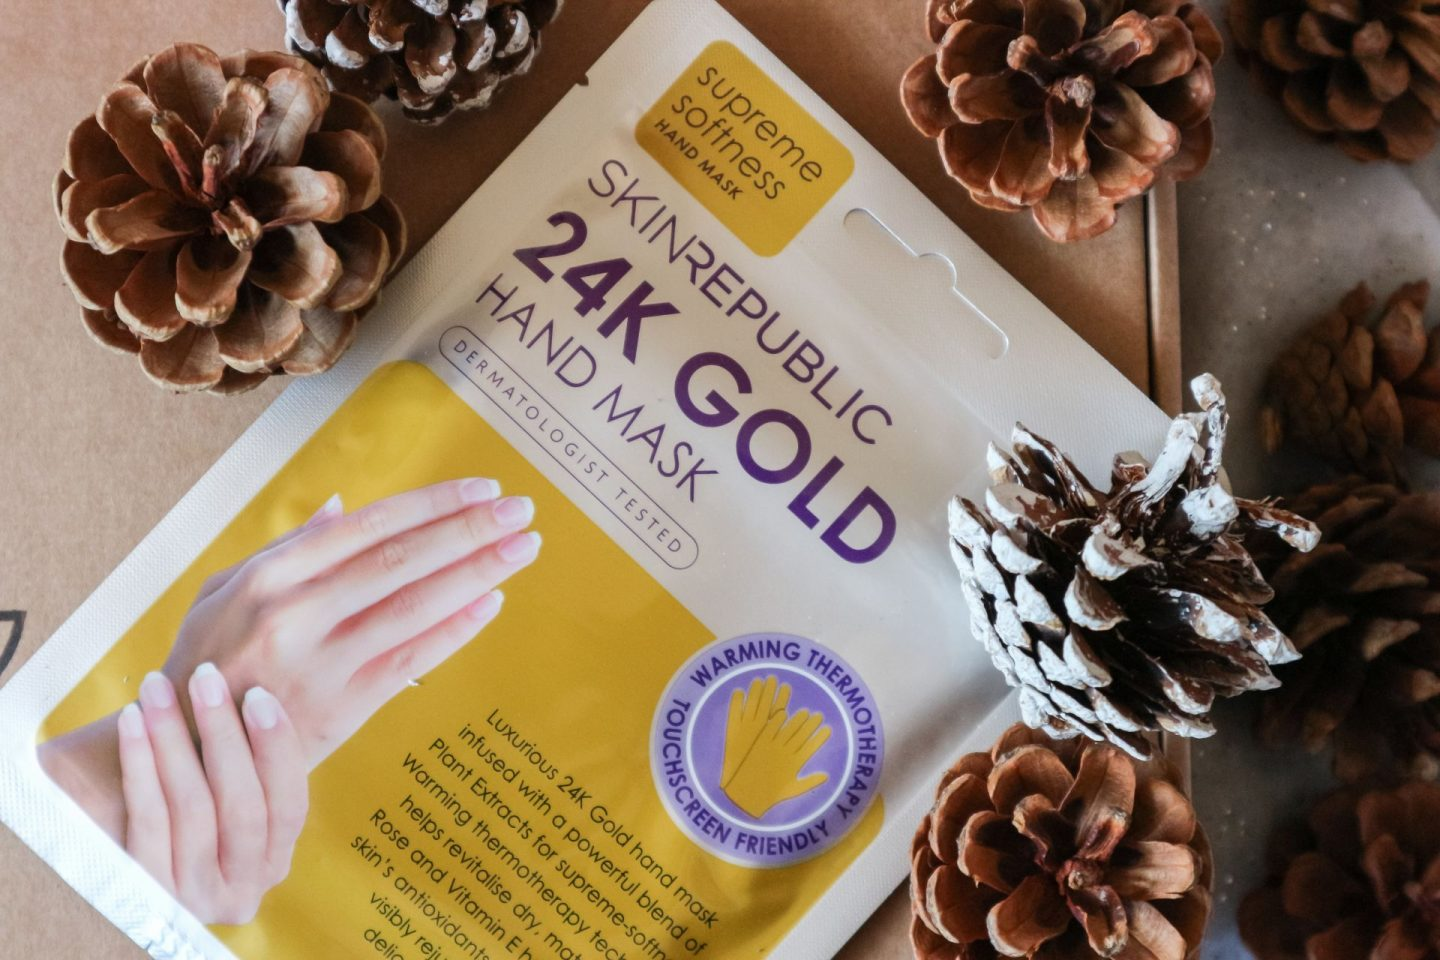 Skin Republic 24K Gold Hand Mask review